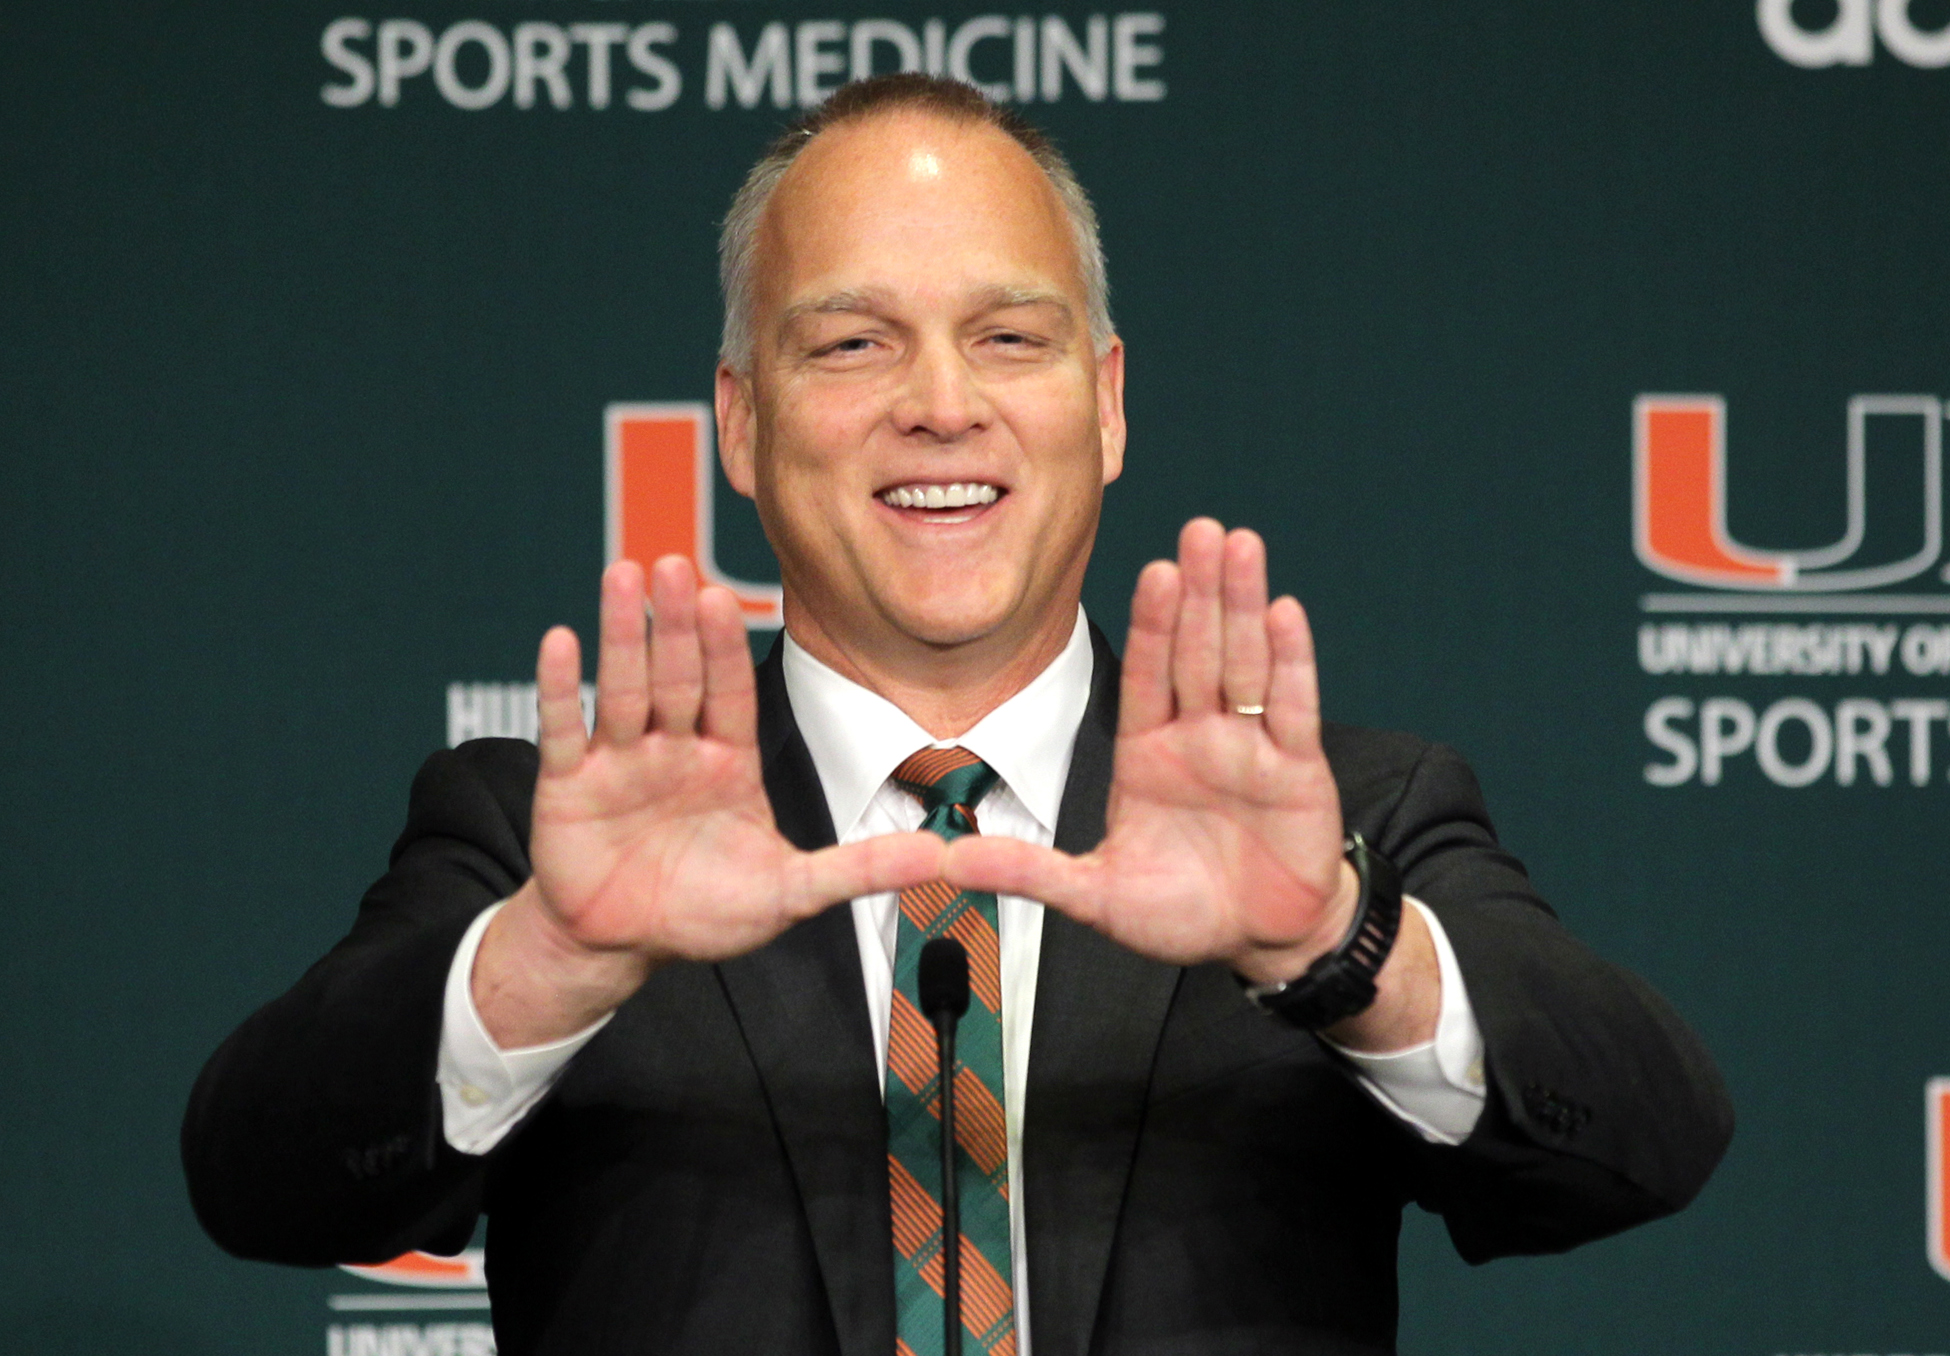 FILE - In this Dec. 4, 2015, file photo, Miami's new football coach Mark Richt gestures after being introduced during an NCAA college football news conference in Coral Gables, Fla. Richt's first signing day as coach of the Miami Hurricanes has finally arr